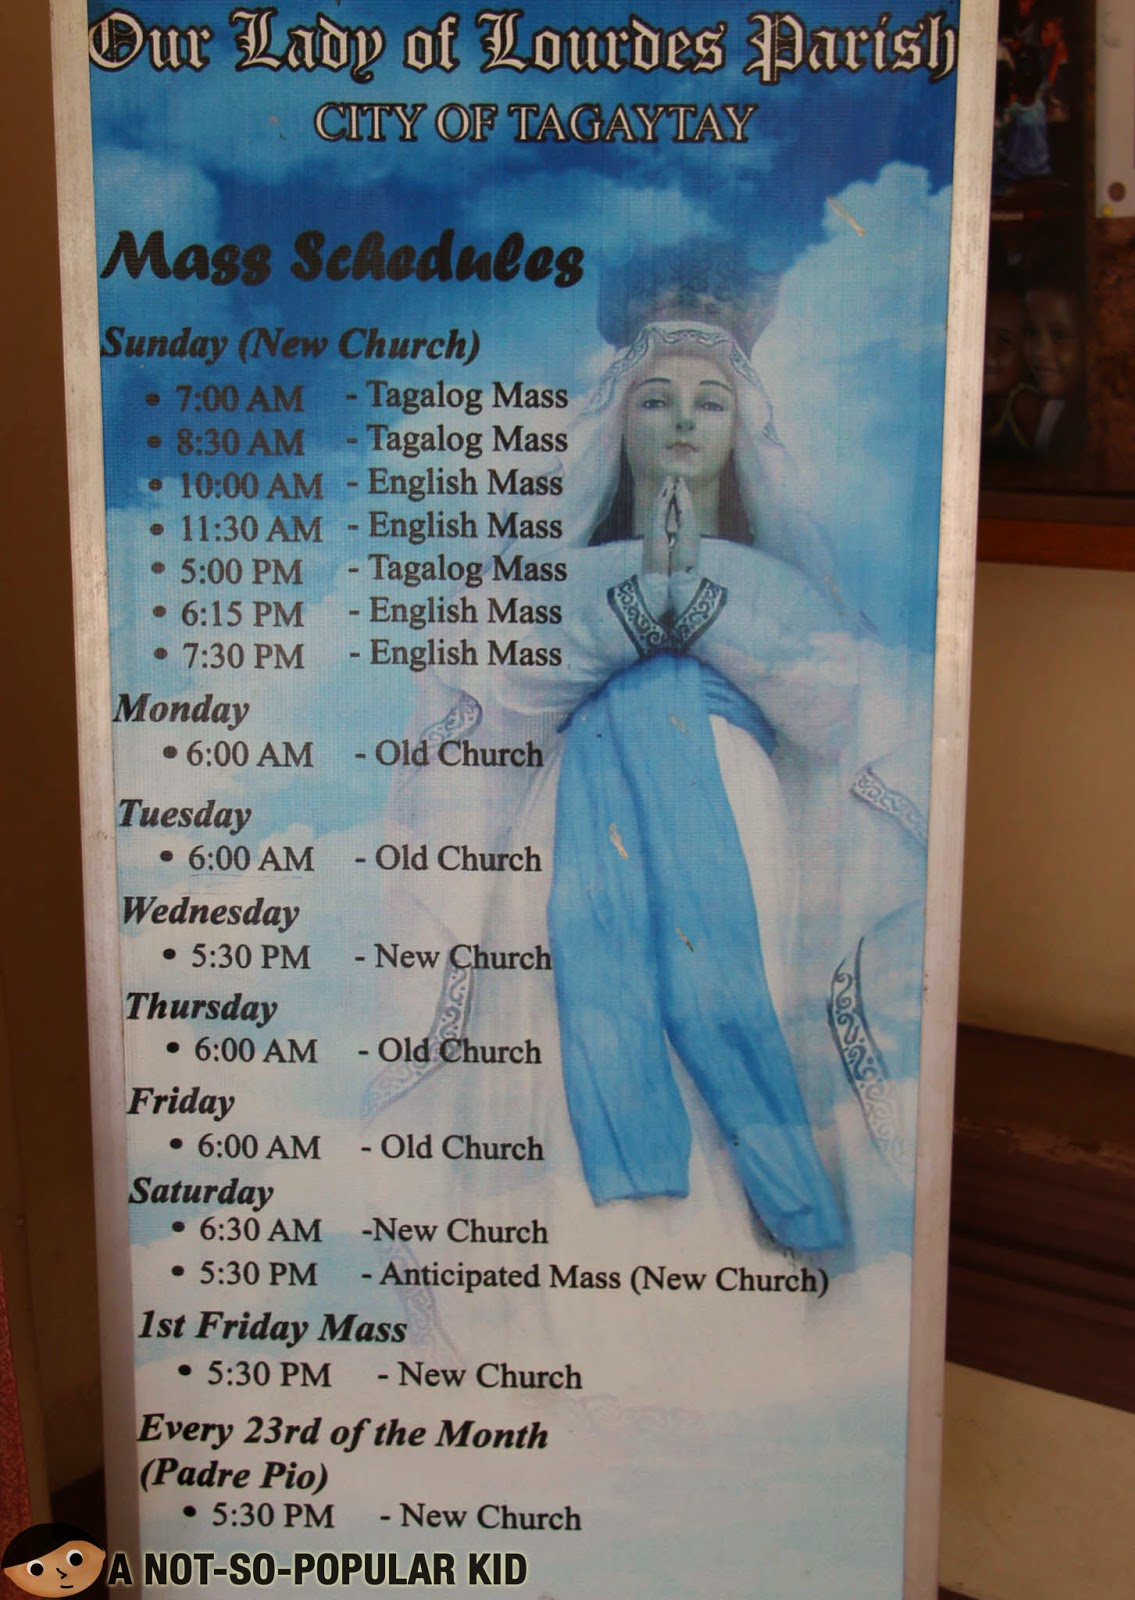 Our Lady of Lourdes Parish (Tagaytay) Mass Schedules